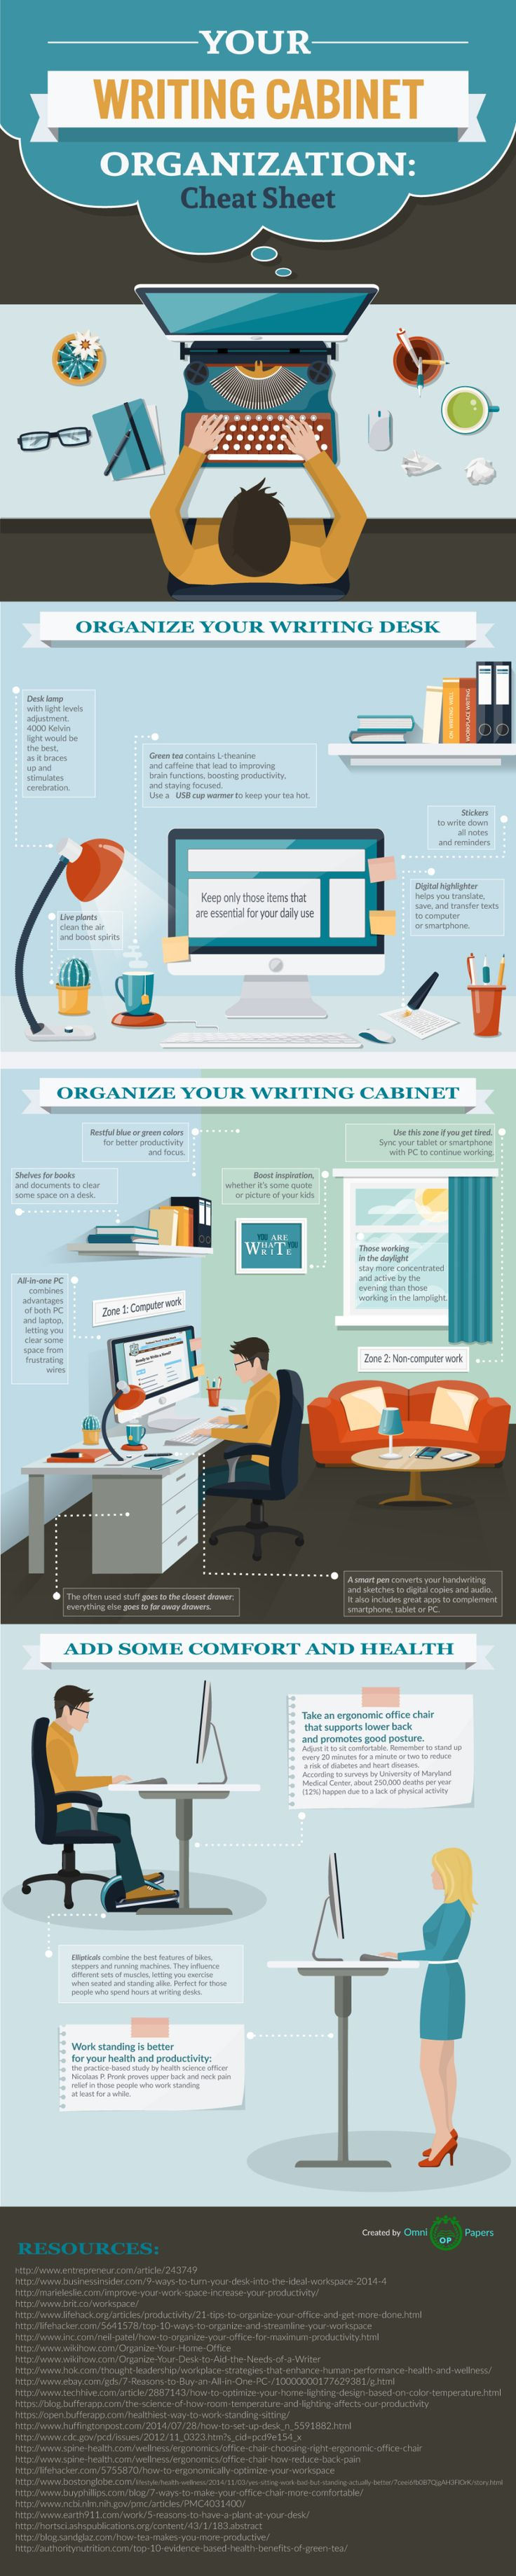 75 best images about organization on pinterest